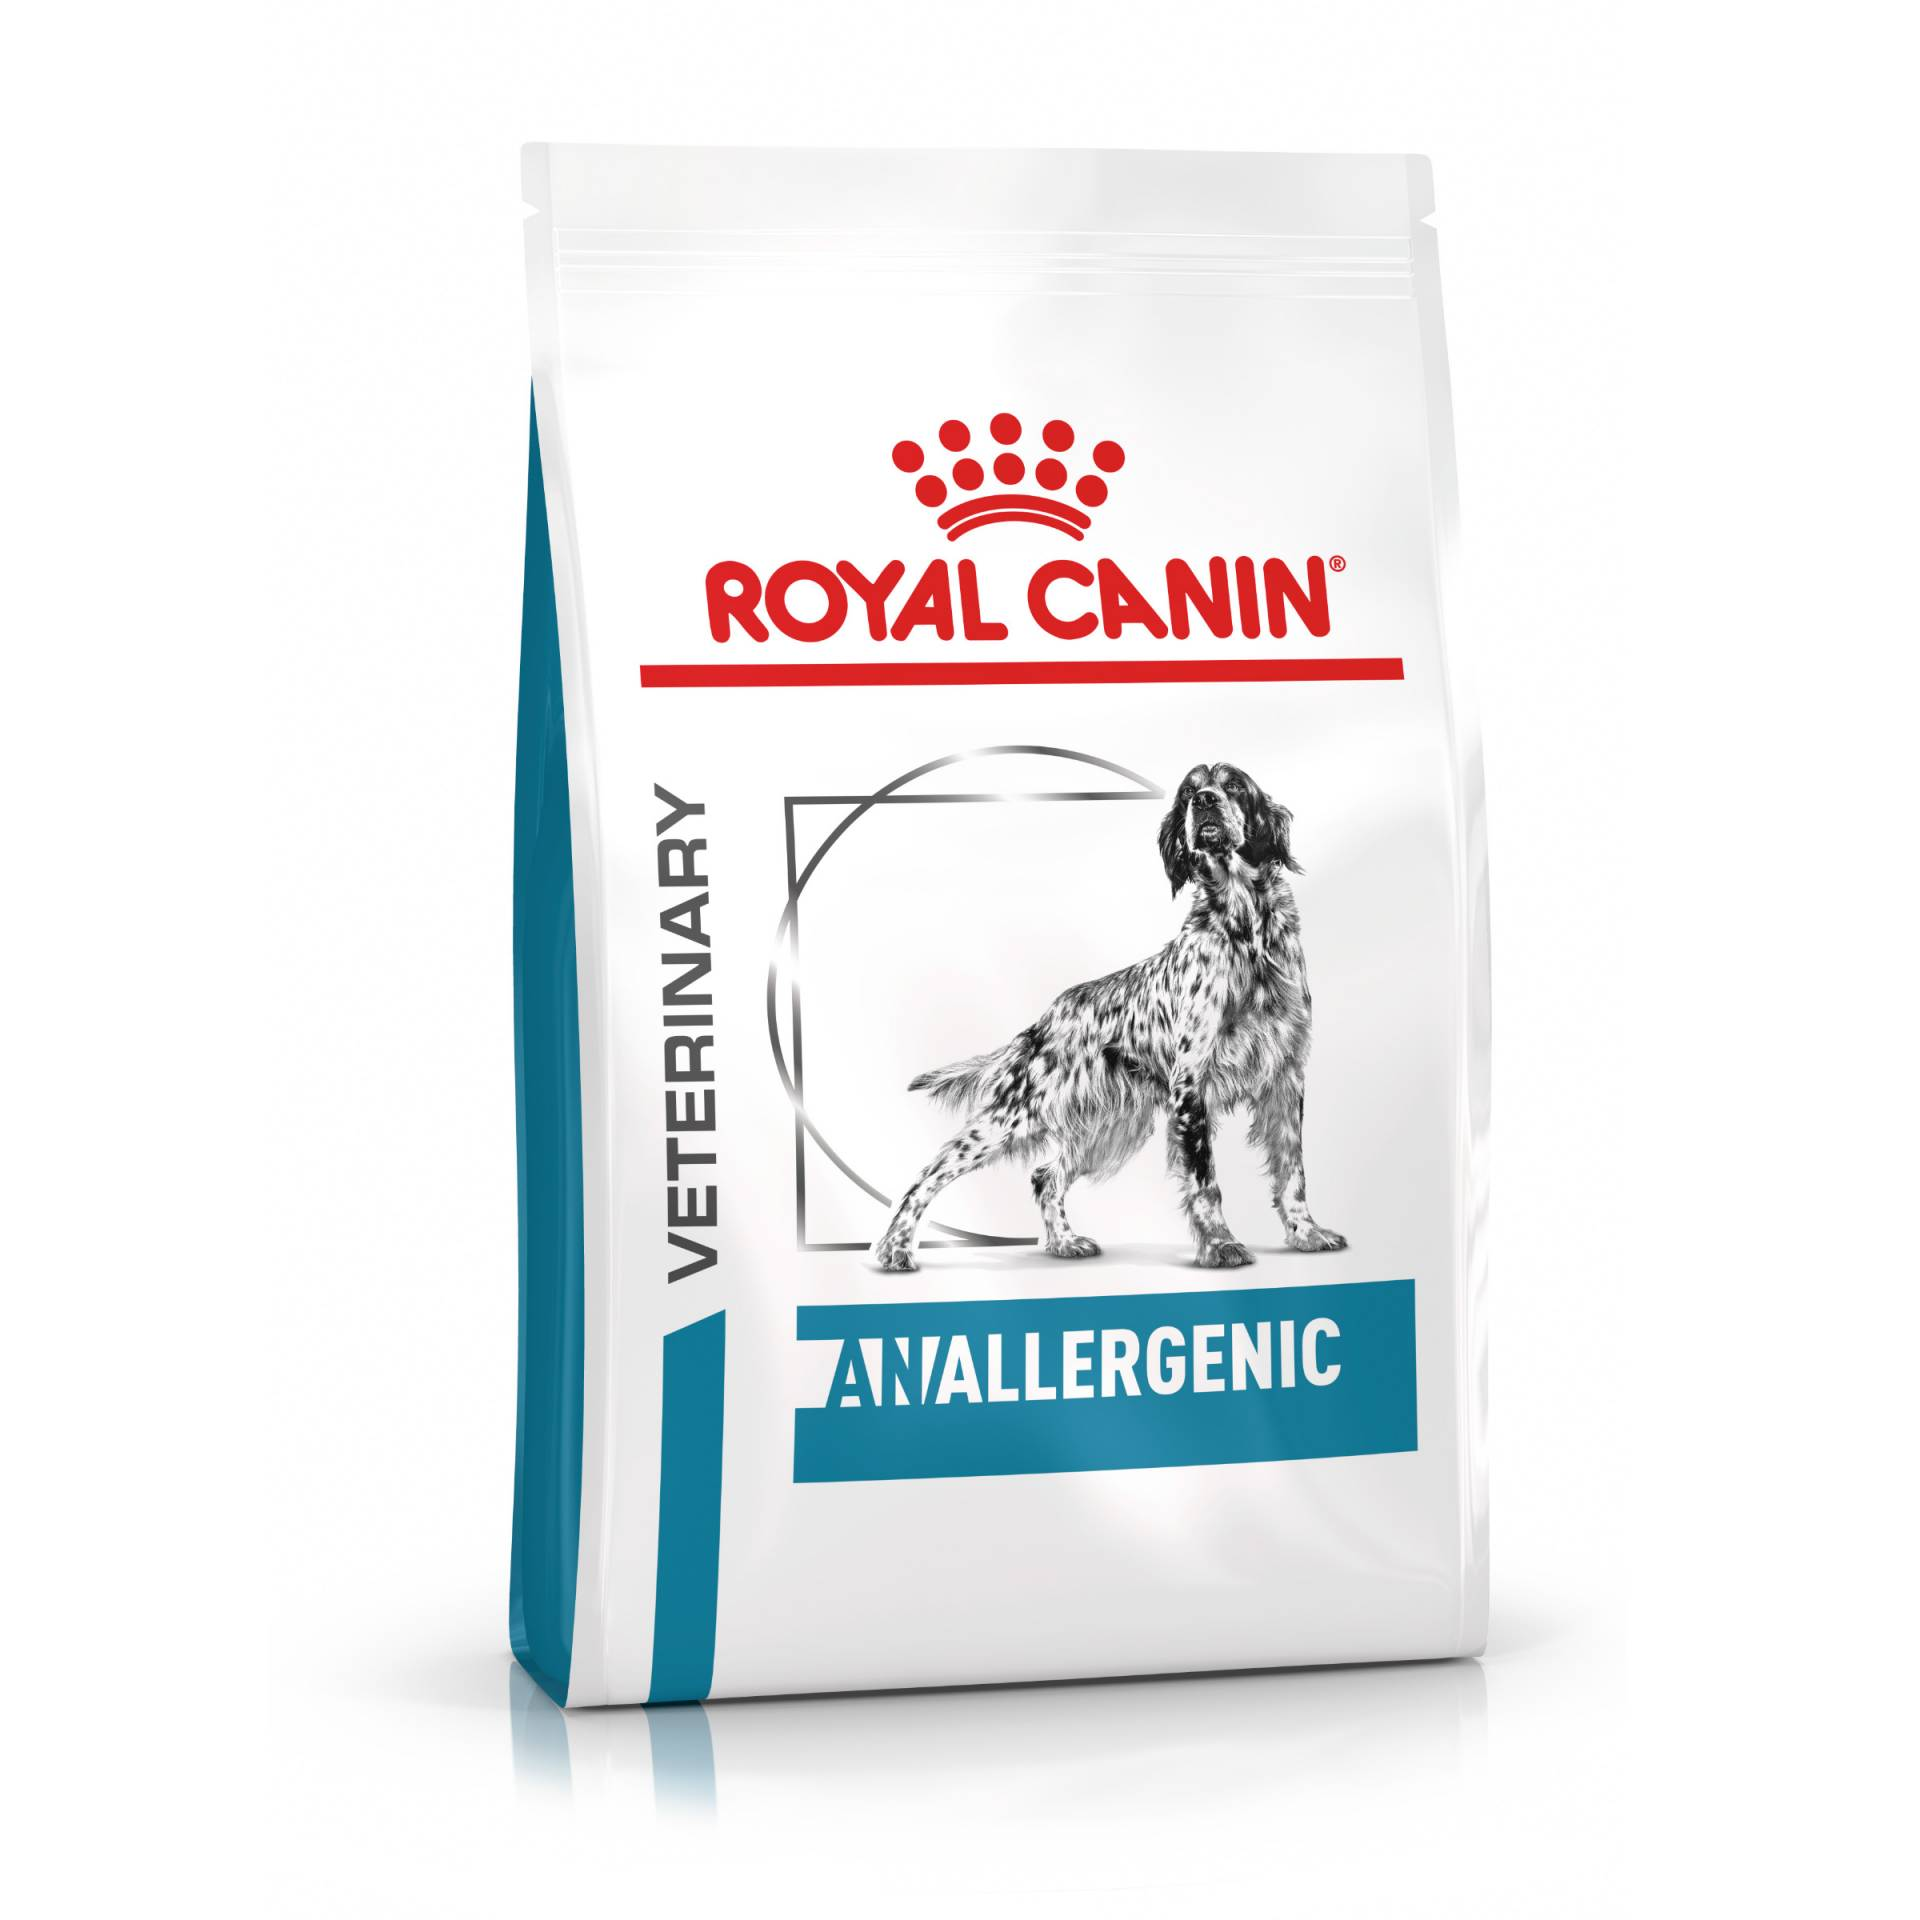 Royal Canin Veterinary Diet Canine Anallergenic - 3 kg von Royal Canin Veterinary Diet